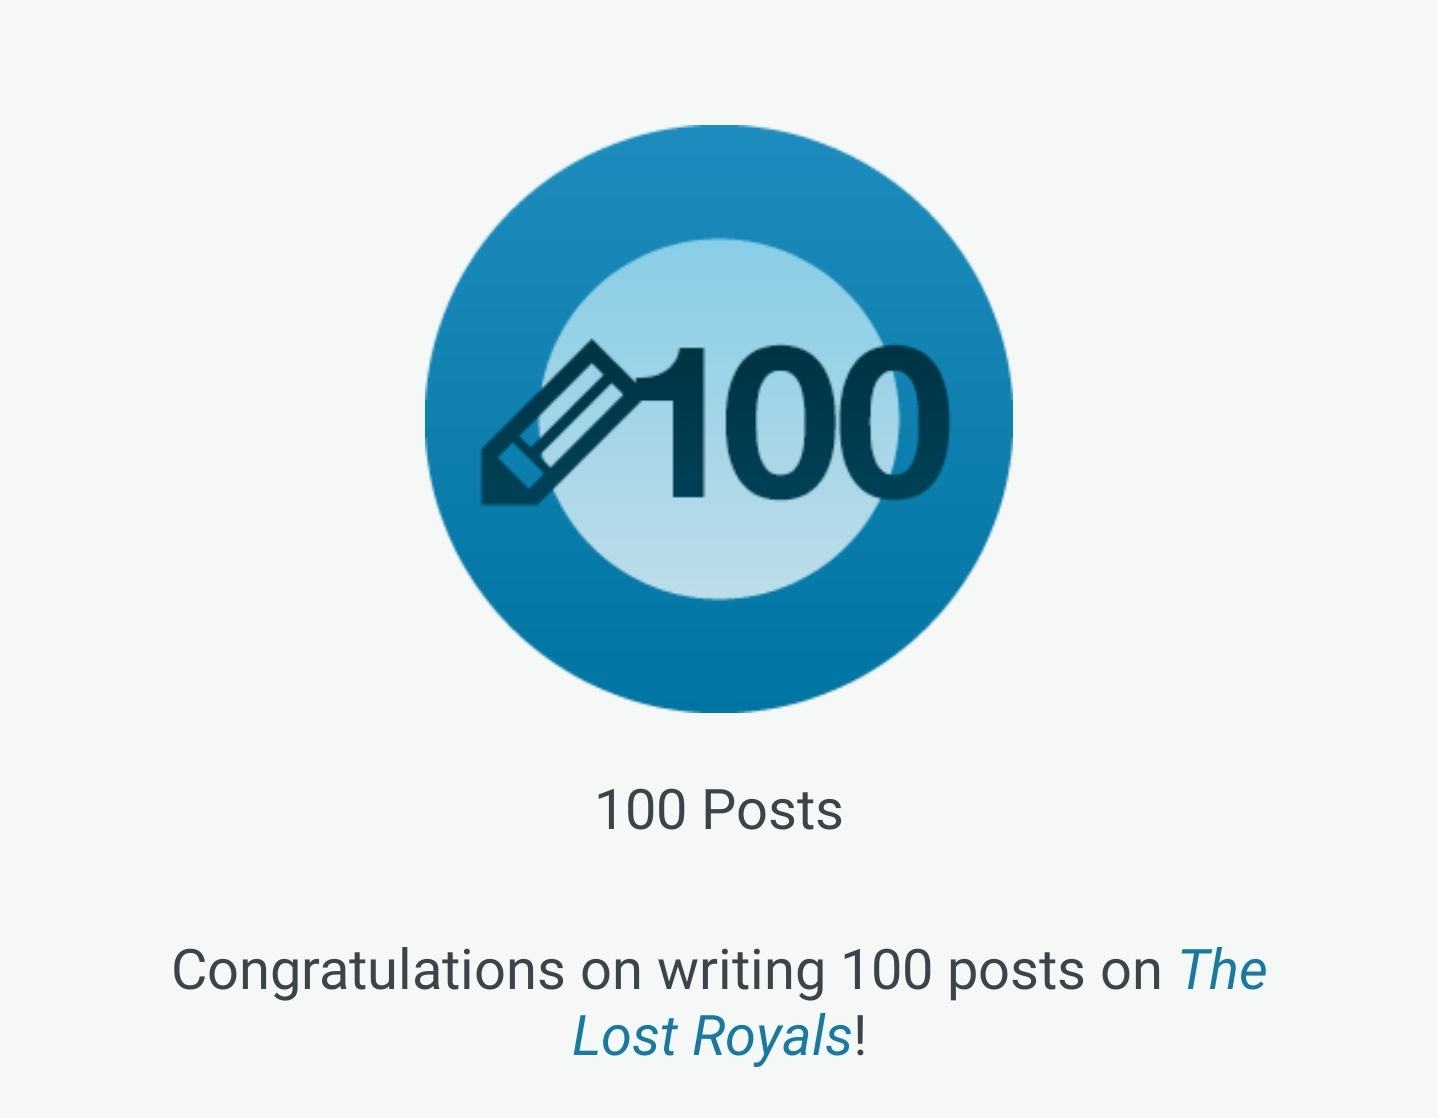 Congratulations on writing 100 posts on The Lost Royals!